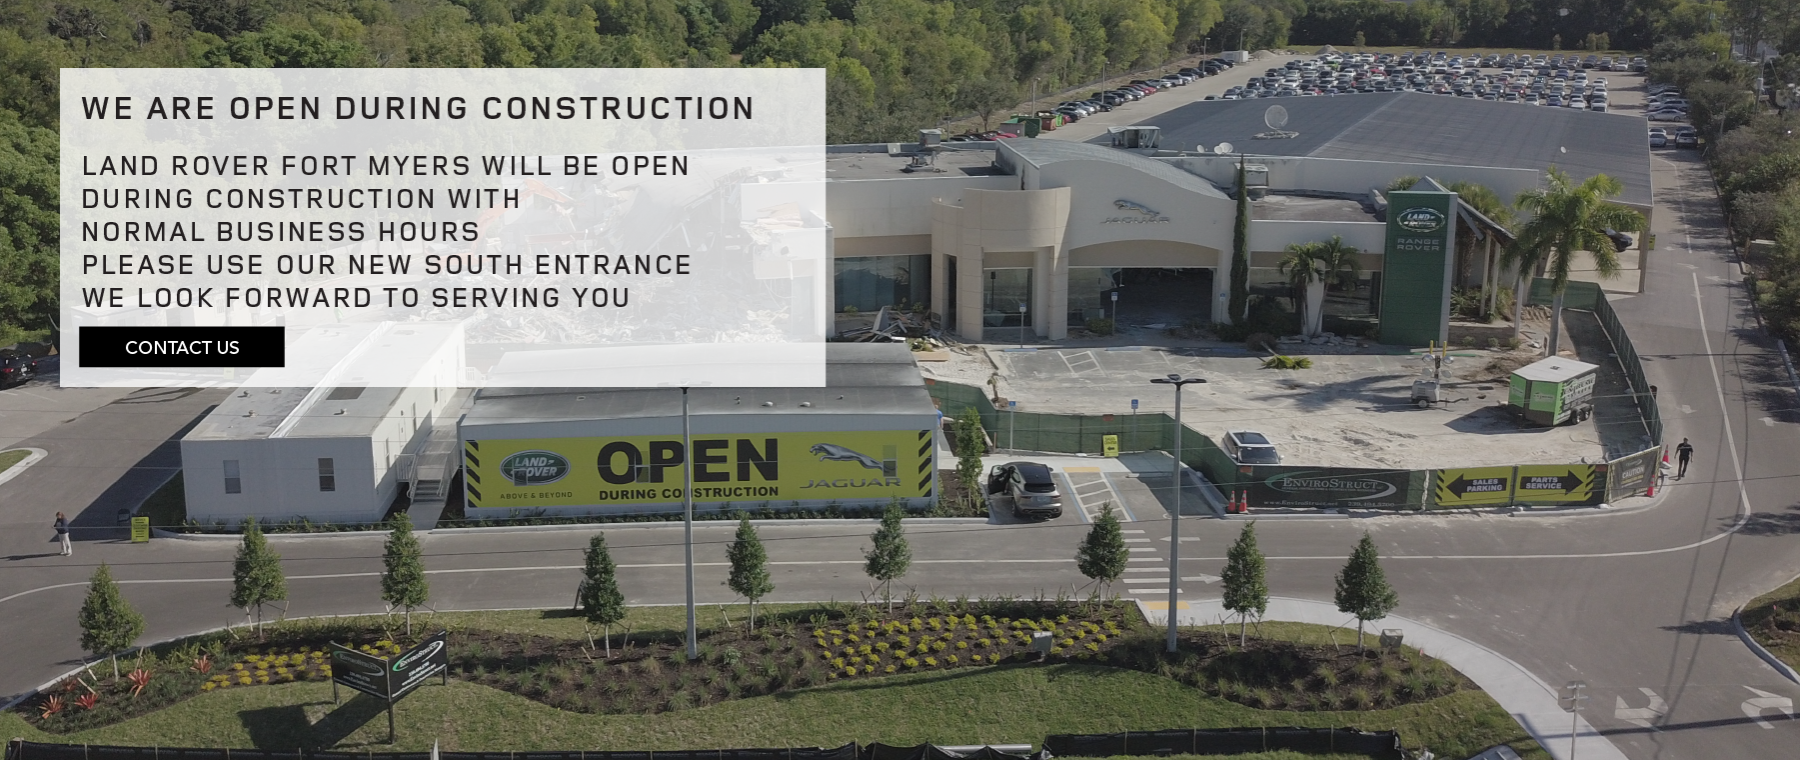 LAND ROVER FORT MYERS | OPEN DURING CONSTRUCTION | IMAGE OF DEALERSHIP UNDER CONSTRUCTION